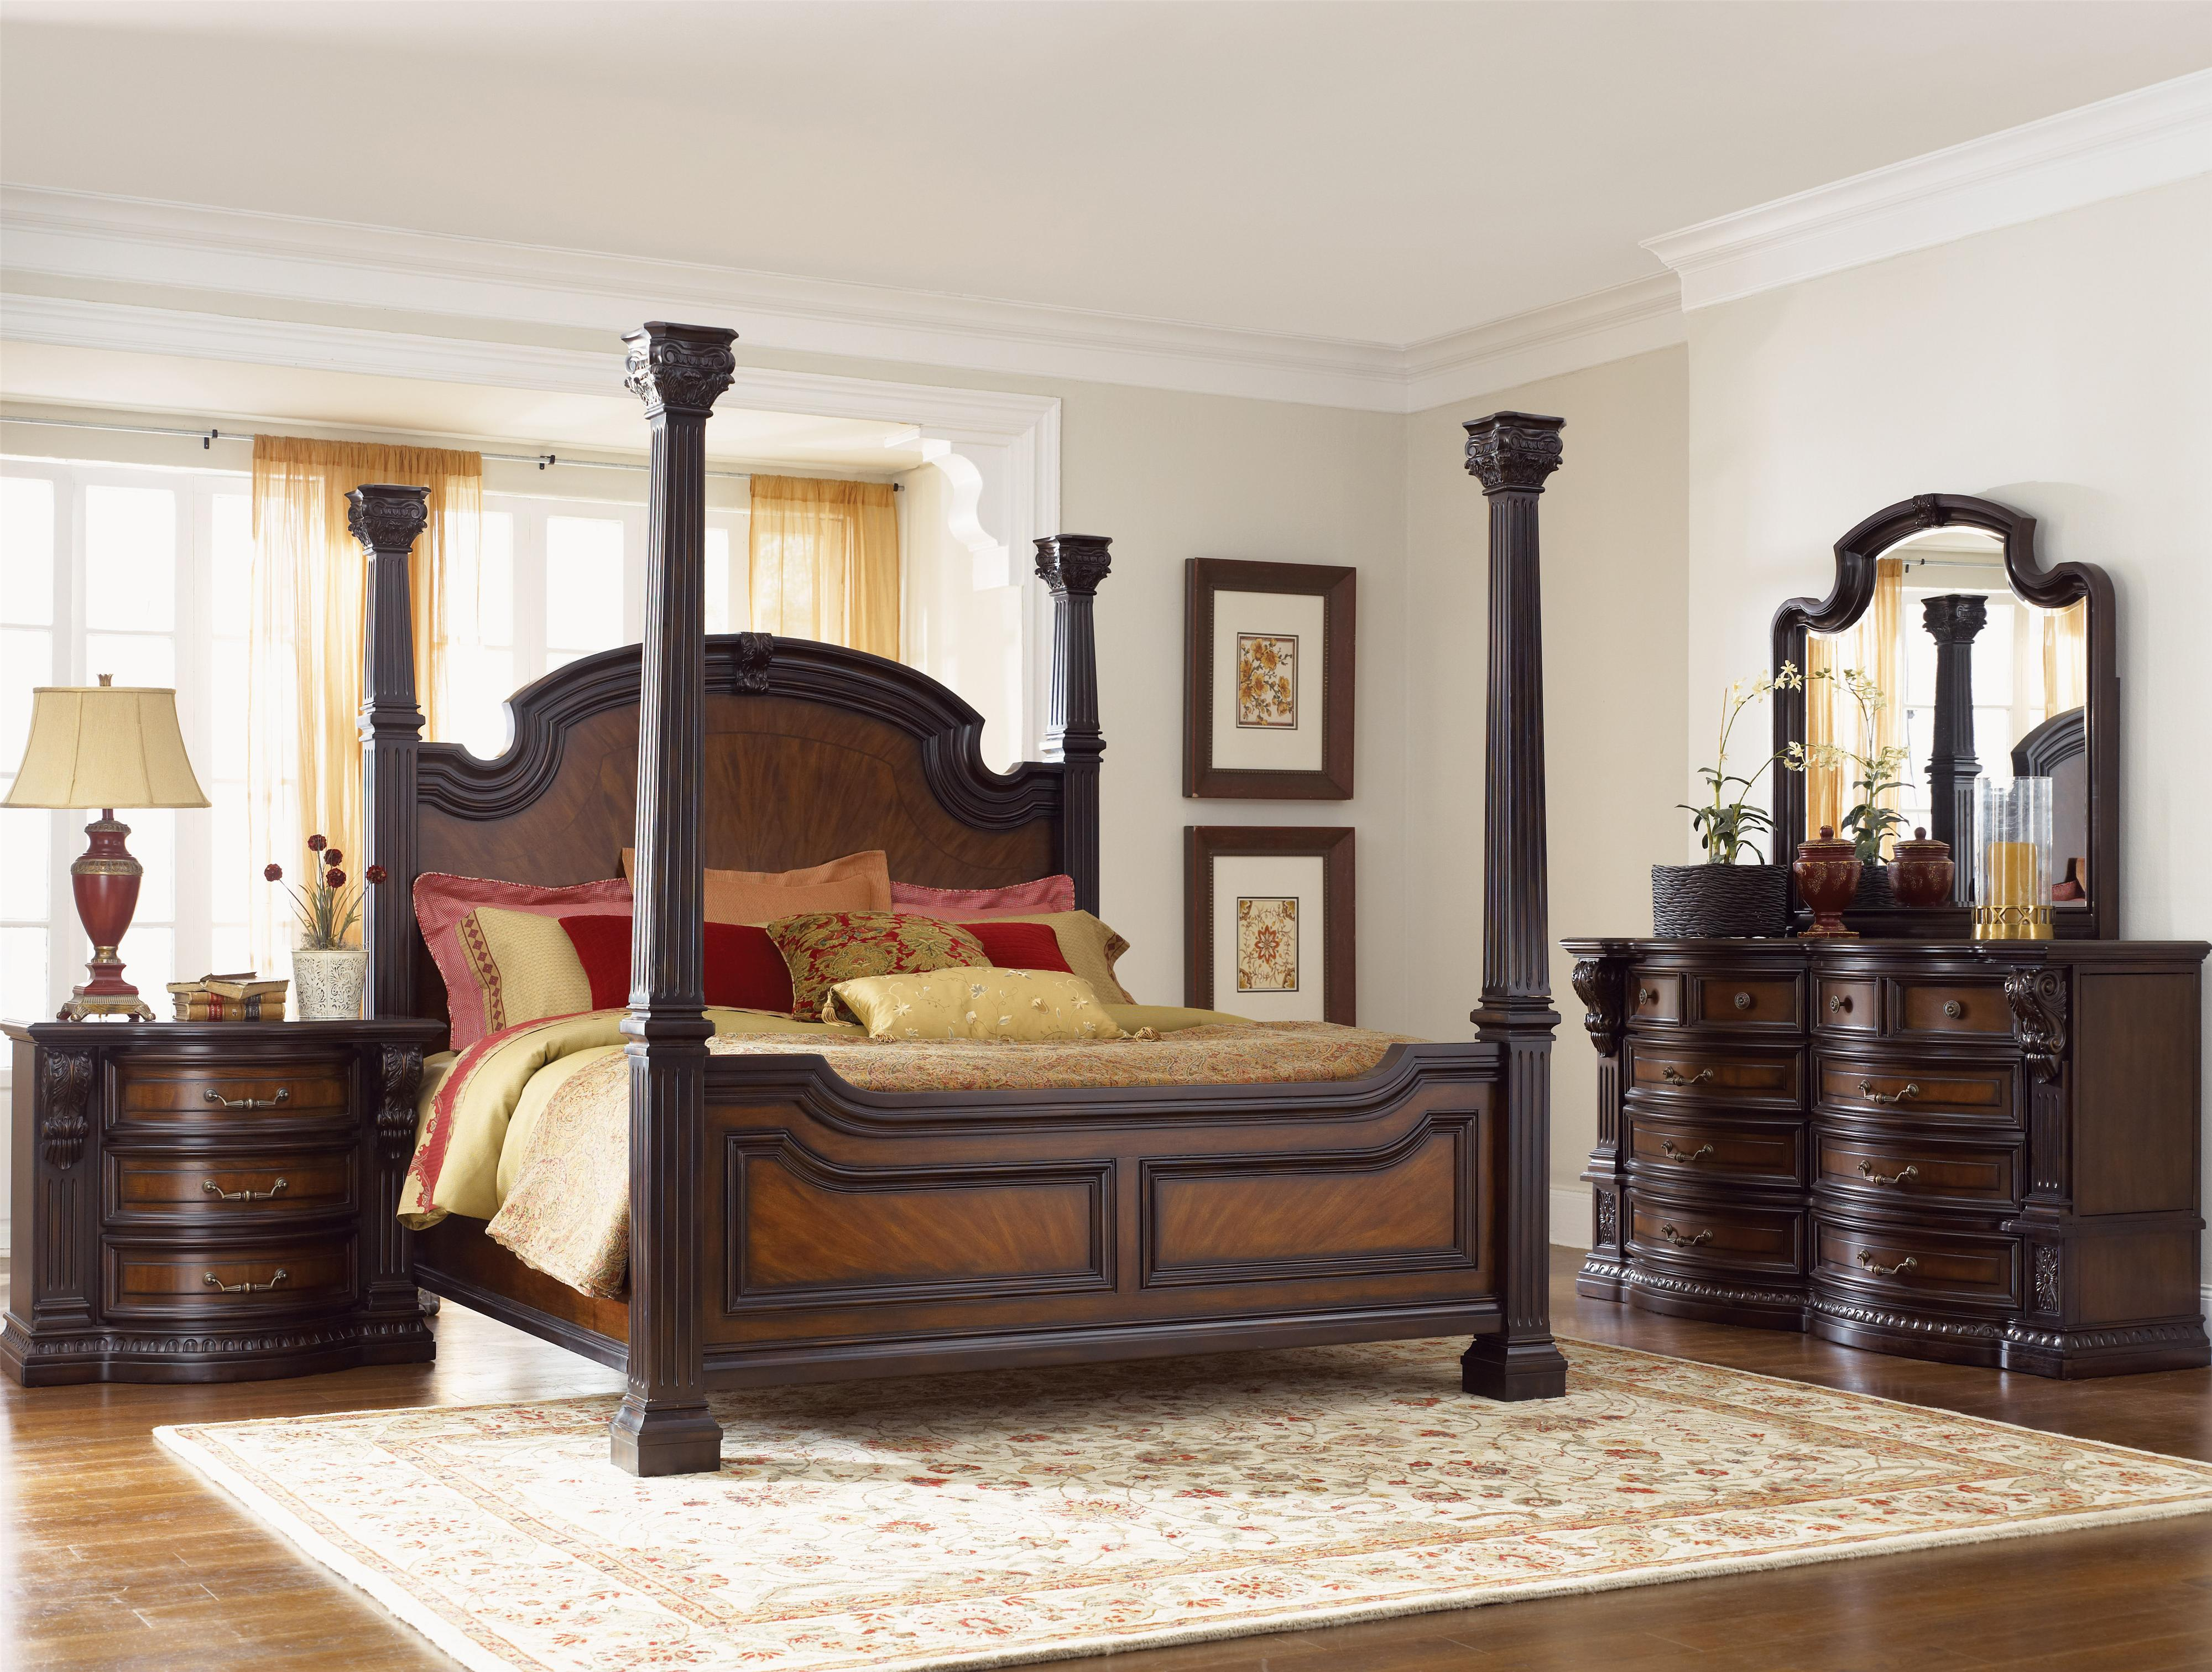 Cheap Bedroom Sets For Sale Grand Estates 02 By Fairmont Designs Royal Furniture